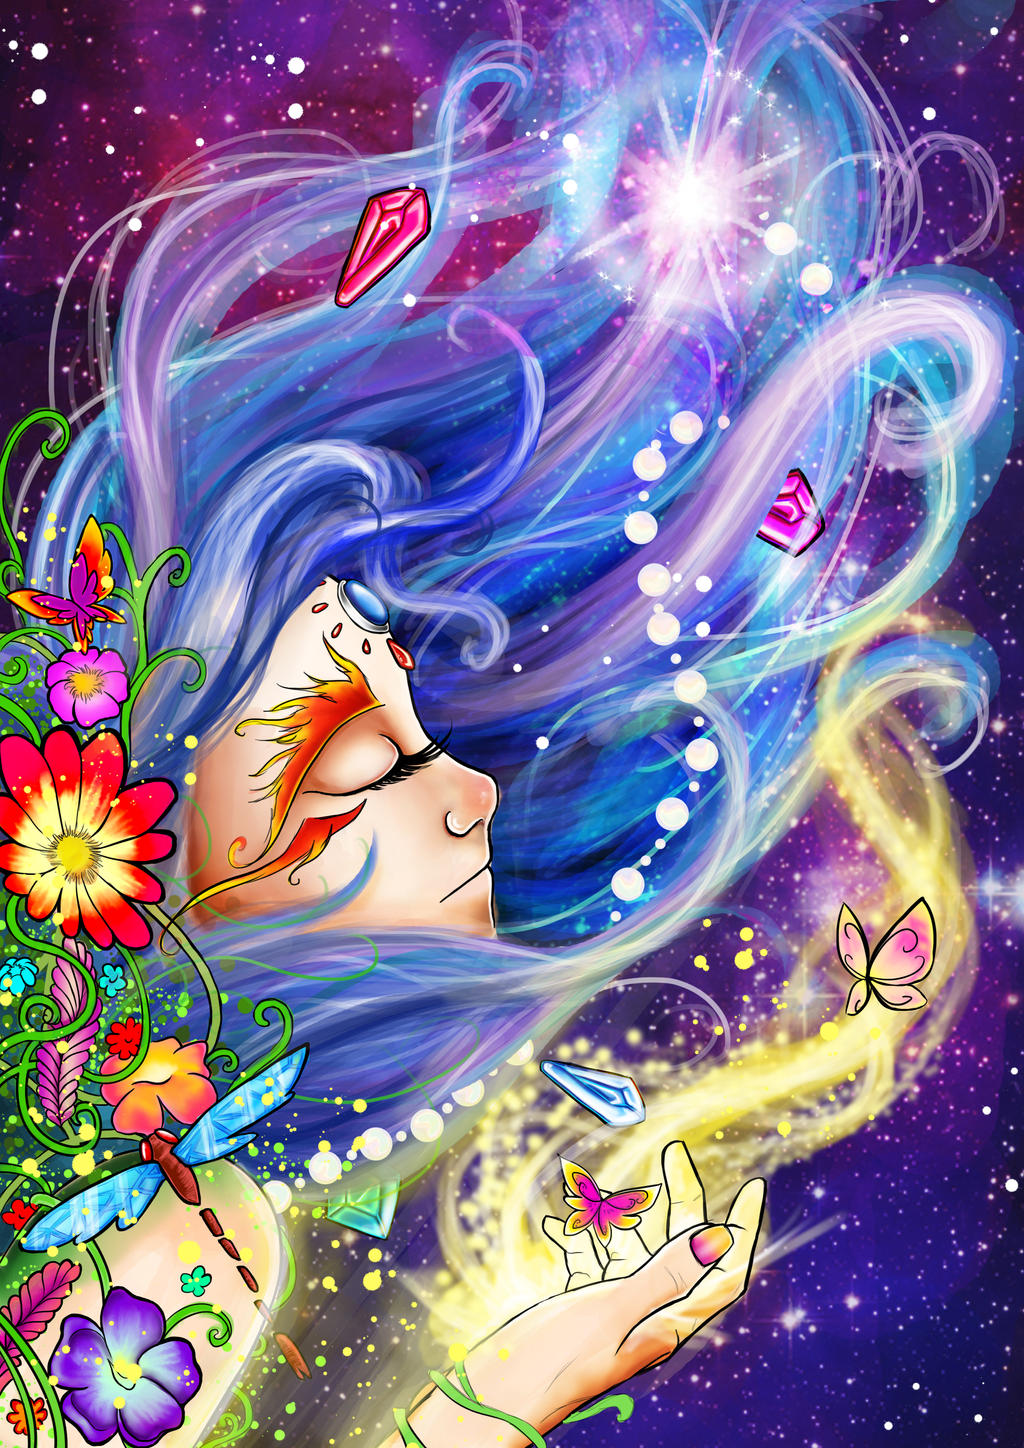 lucy in the sky with diamonds by alfredov90 on deviantart